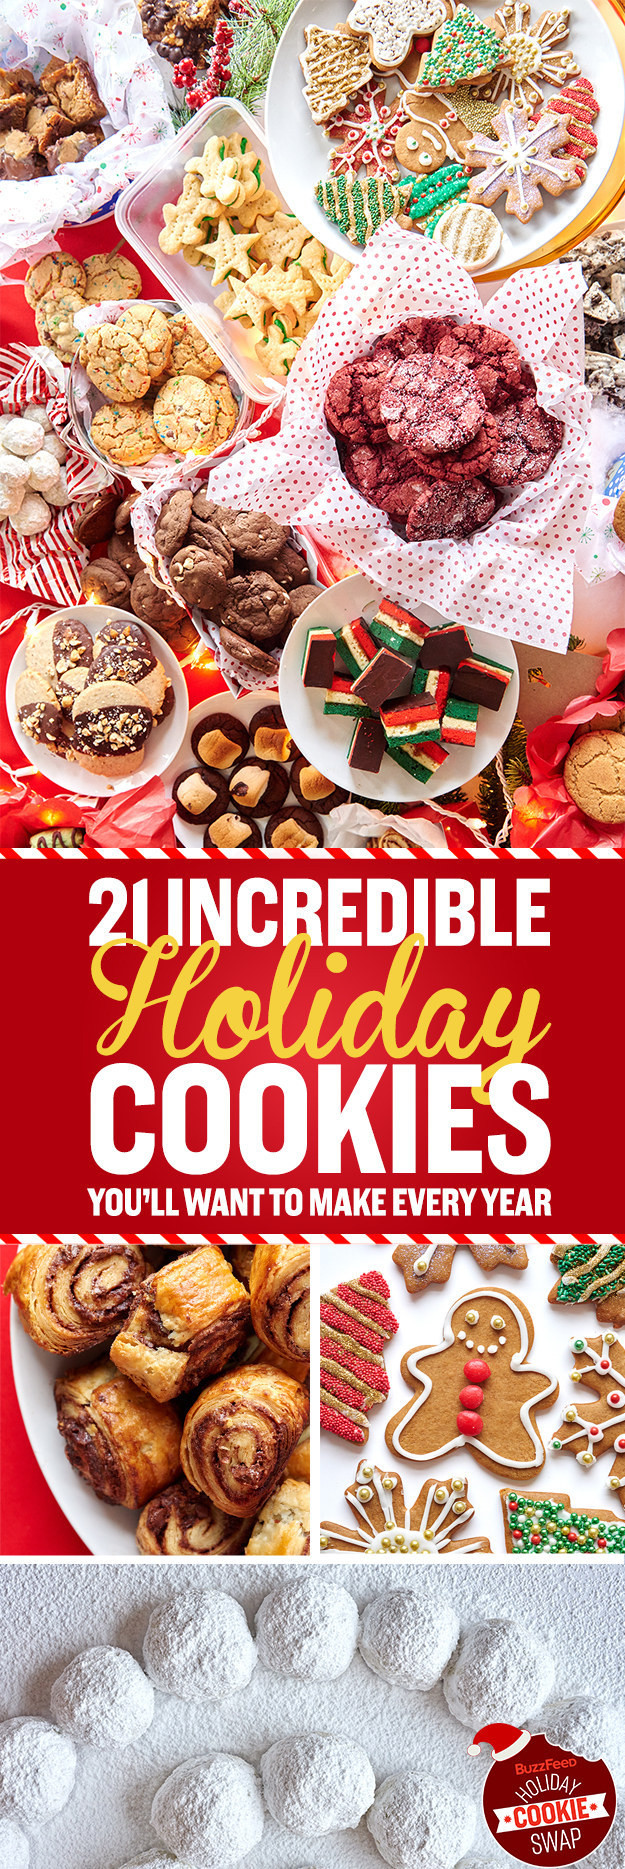 Buzzfeed Christmas Cookies  21 Cookies You Need To Make For The Holidays